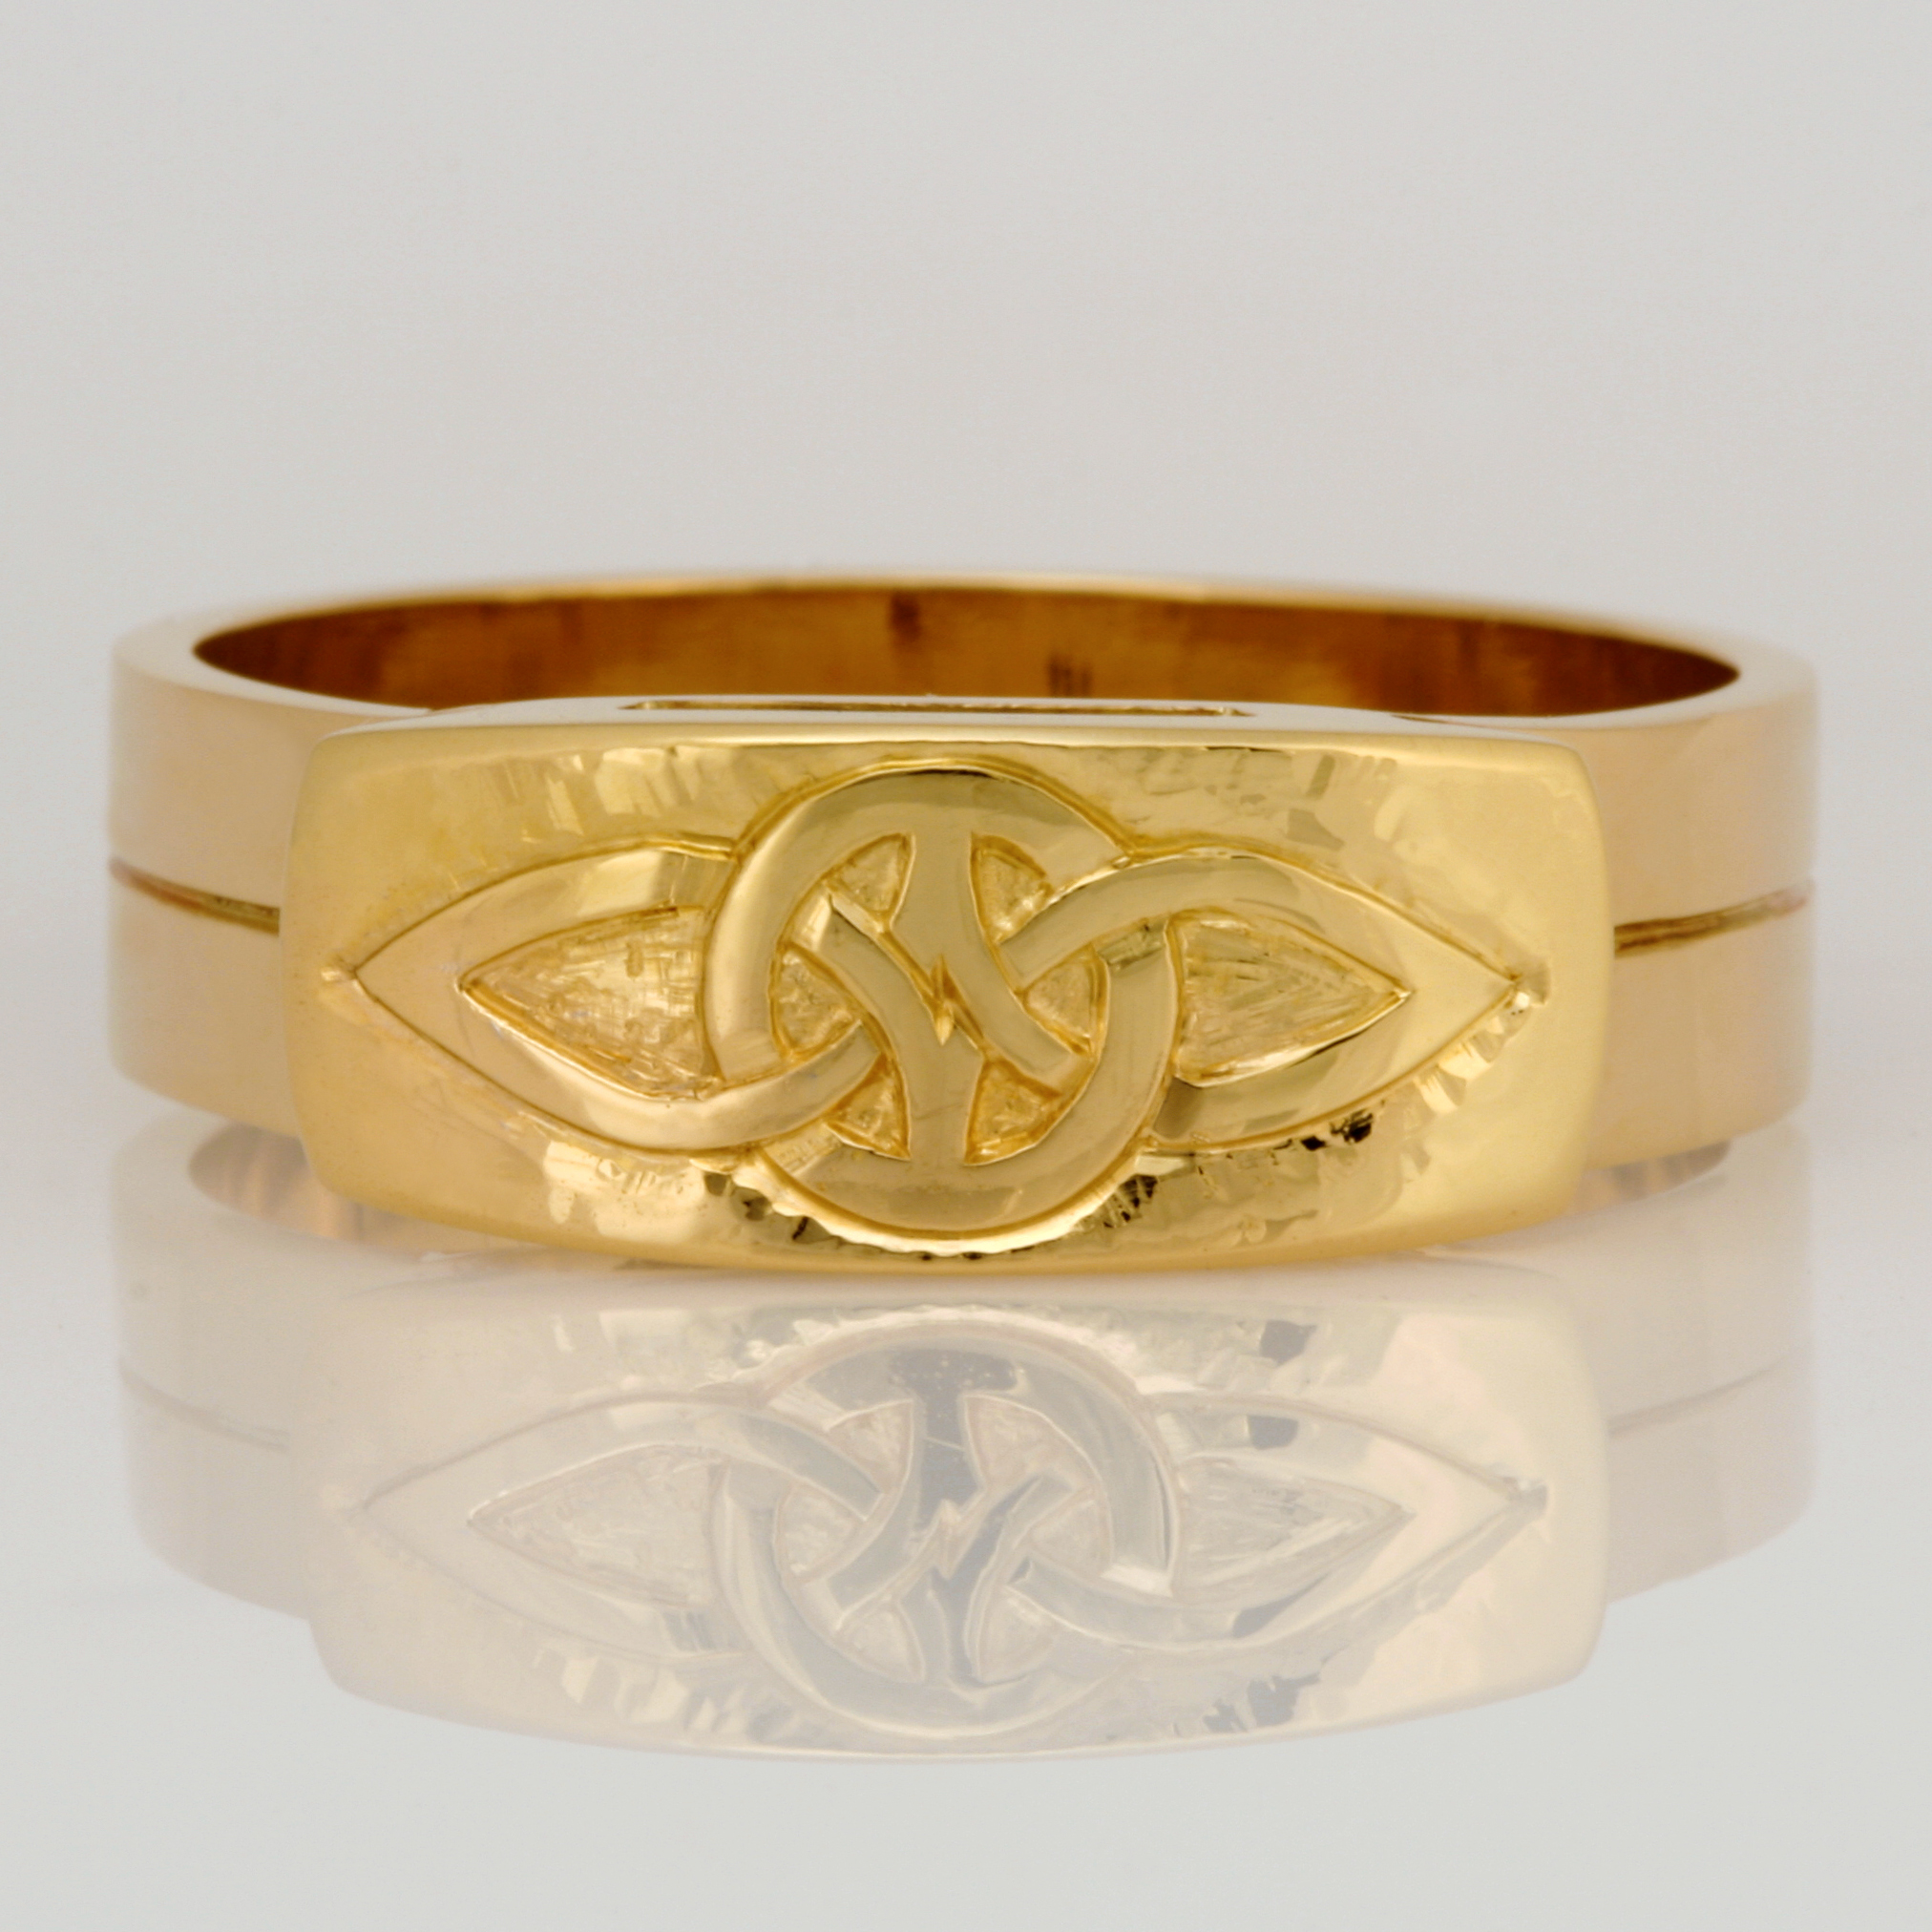 Handmade gents 14ct yellow gold ring featuring a 18ct yellow gold hand carved knot pattern top